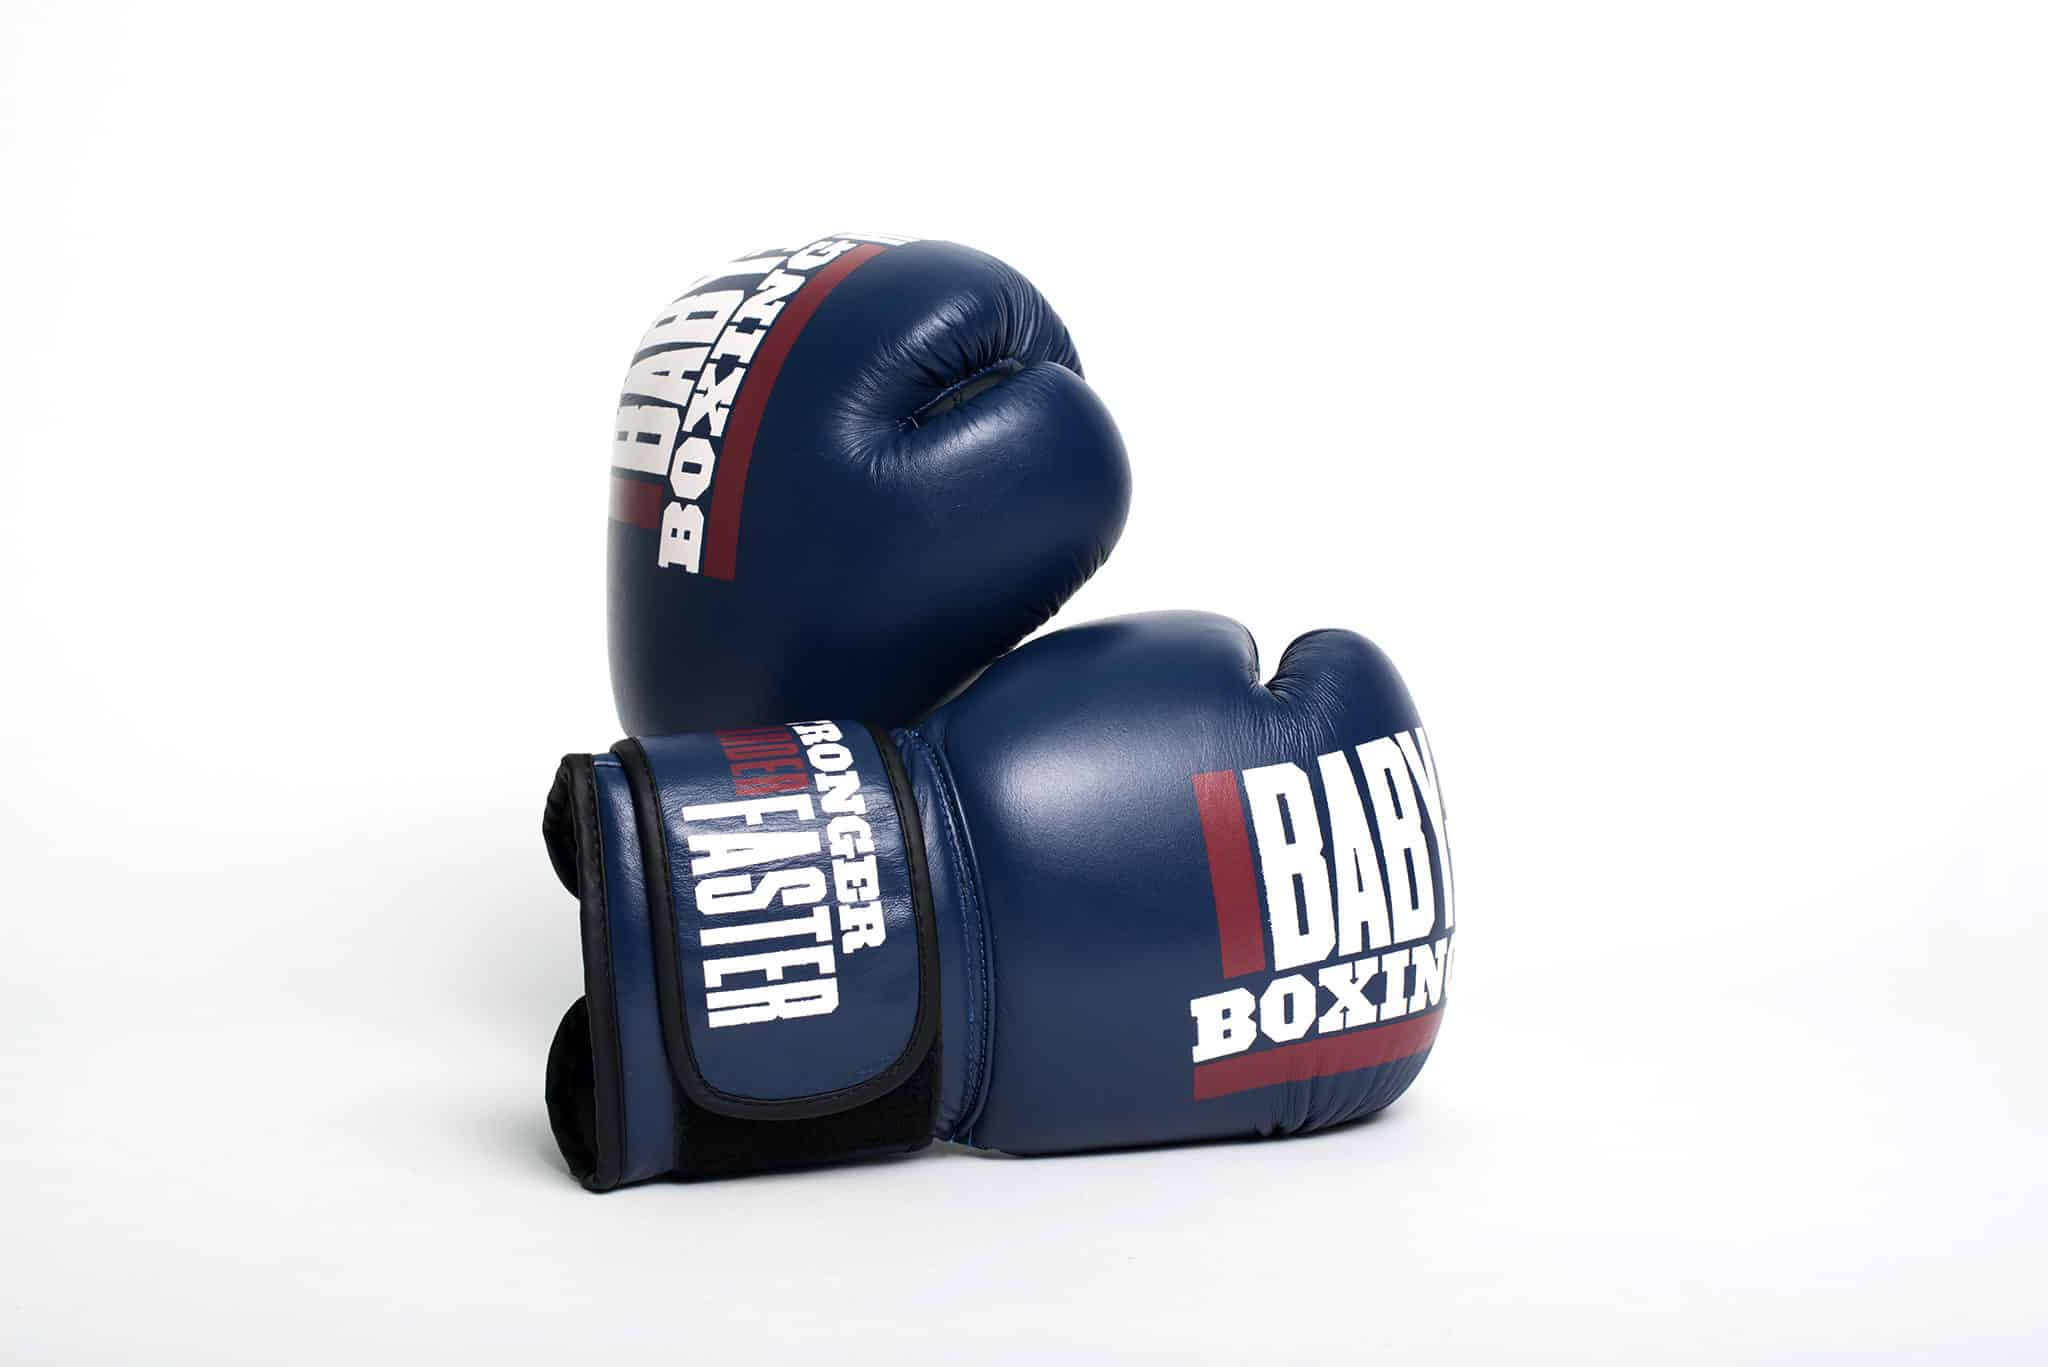 Custom boxing gloves for Baby Bull Boxing | Designed by Field of Study: A branding and graphic design consultancy | Houston TX | Jennifer Blanco & John Earles